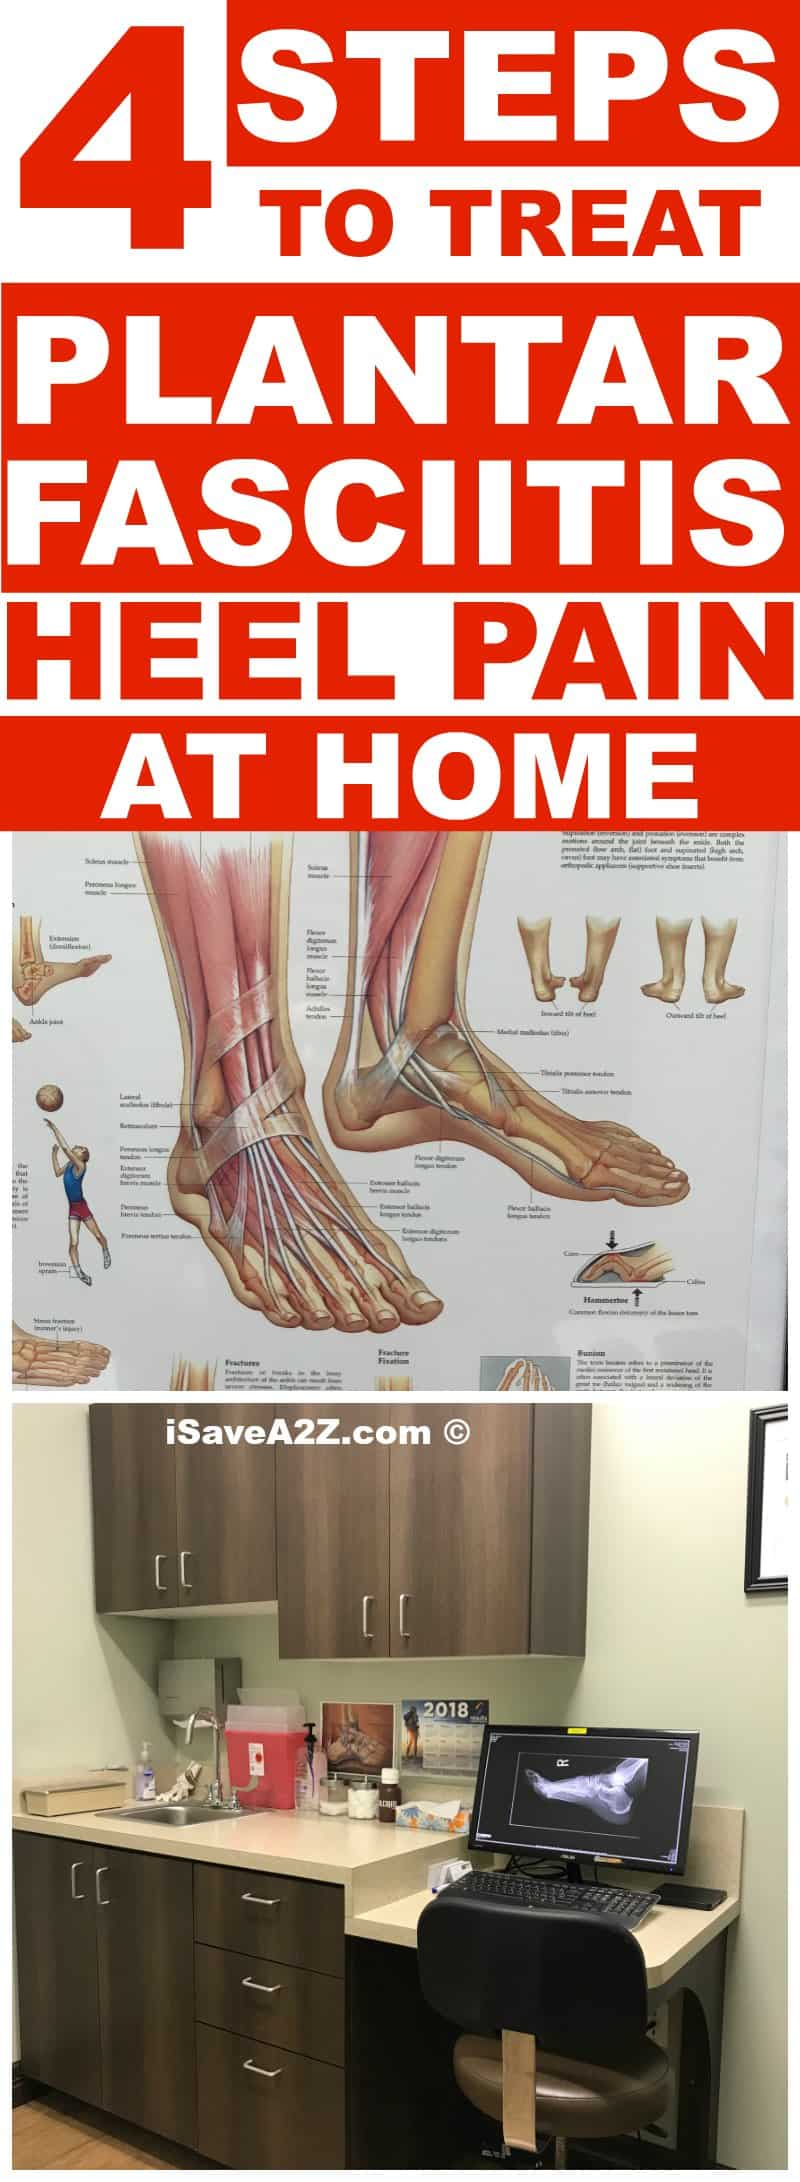 4 Steps To Treat Plantar Fasciitis Heel Pain At Home